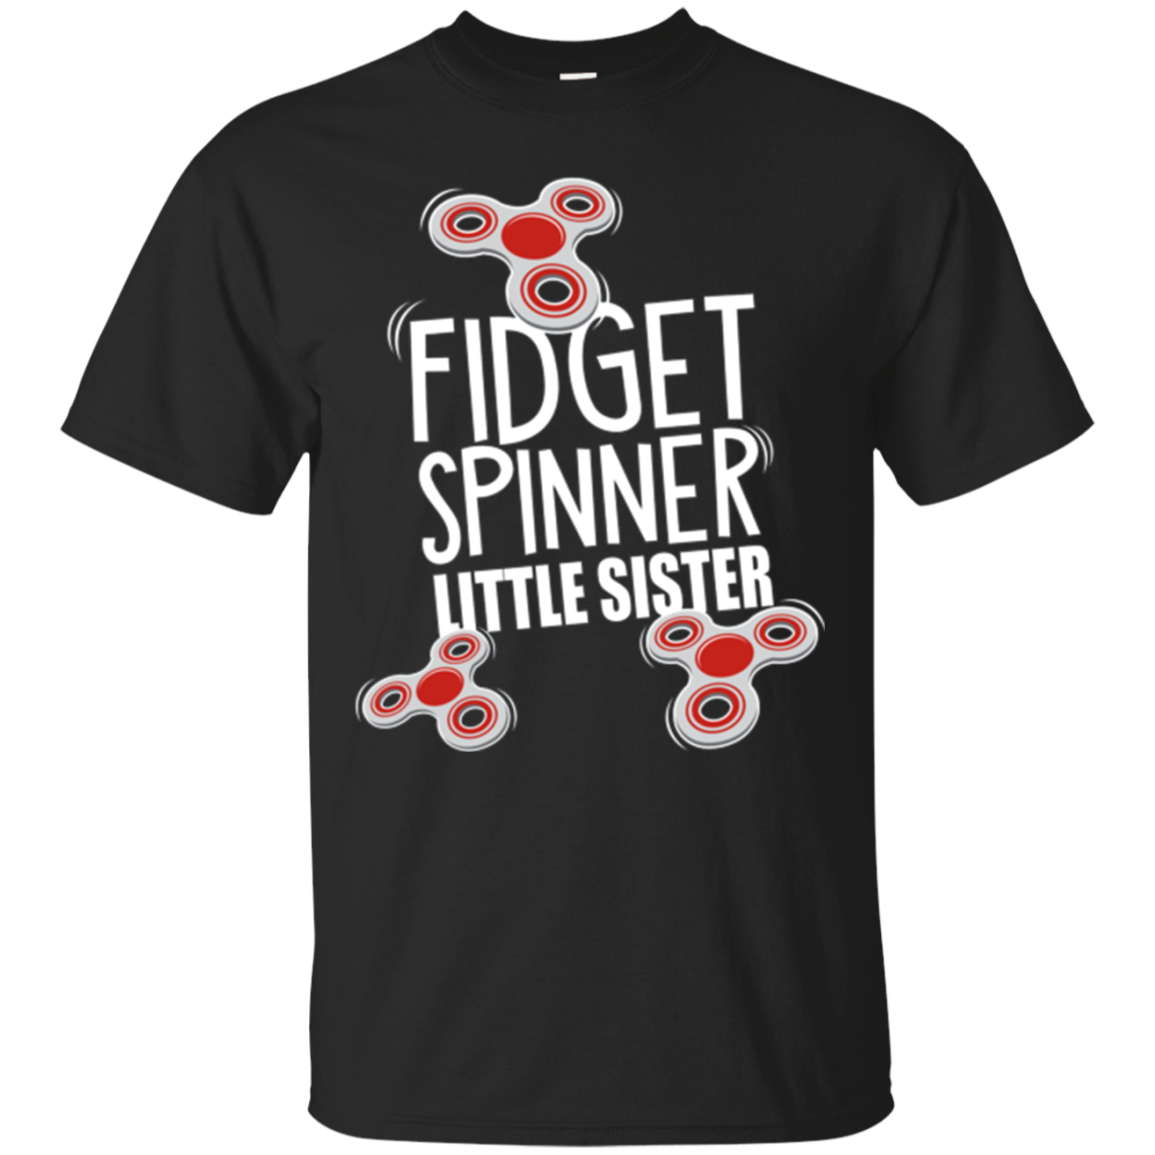 Kids Fidget Spinner Little Sister T-Shirt - Fidgeter Girls Tee